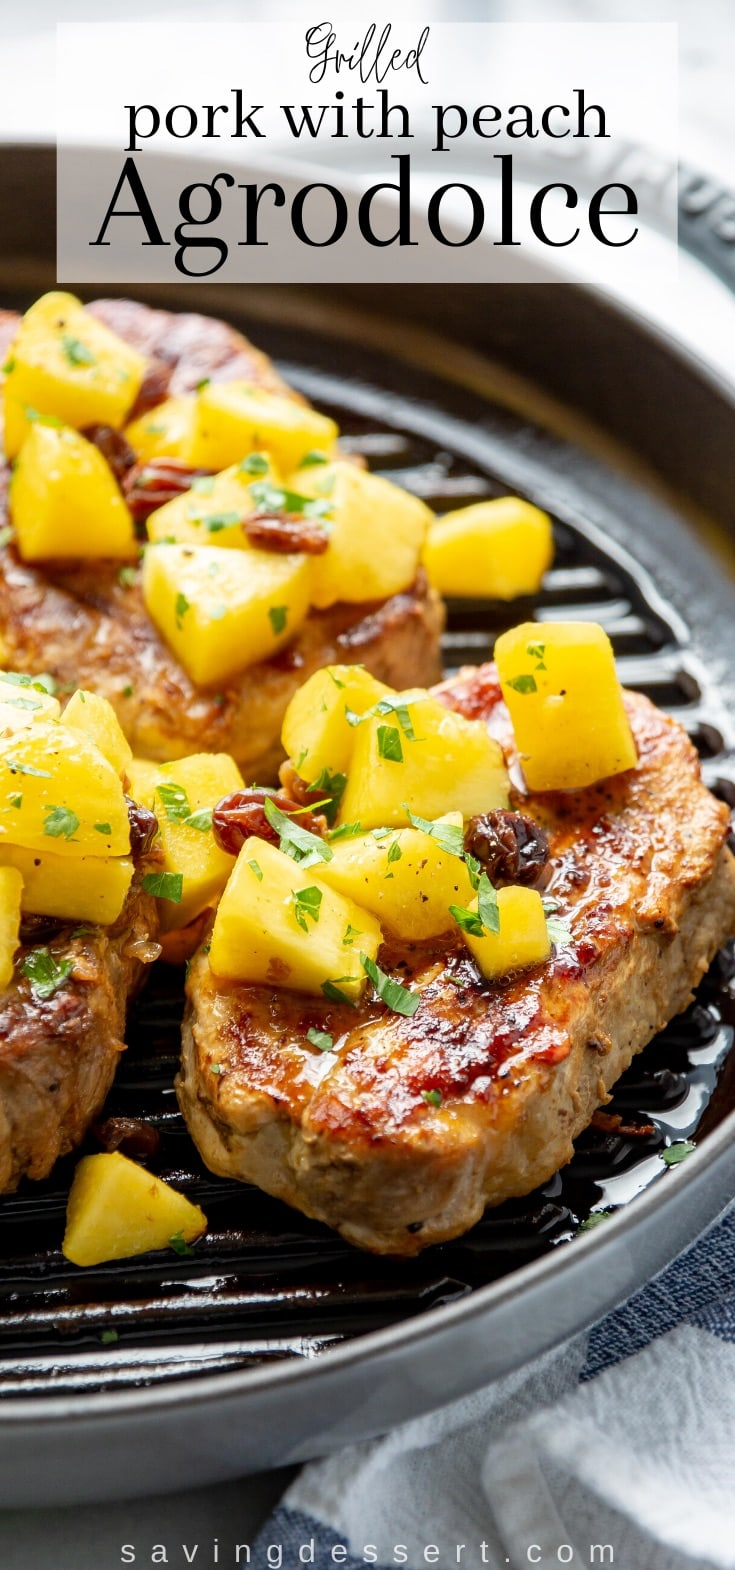 A stove top grill pan with boneless pork chops topped with peach argodolce